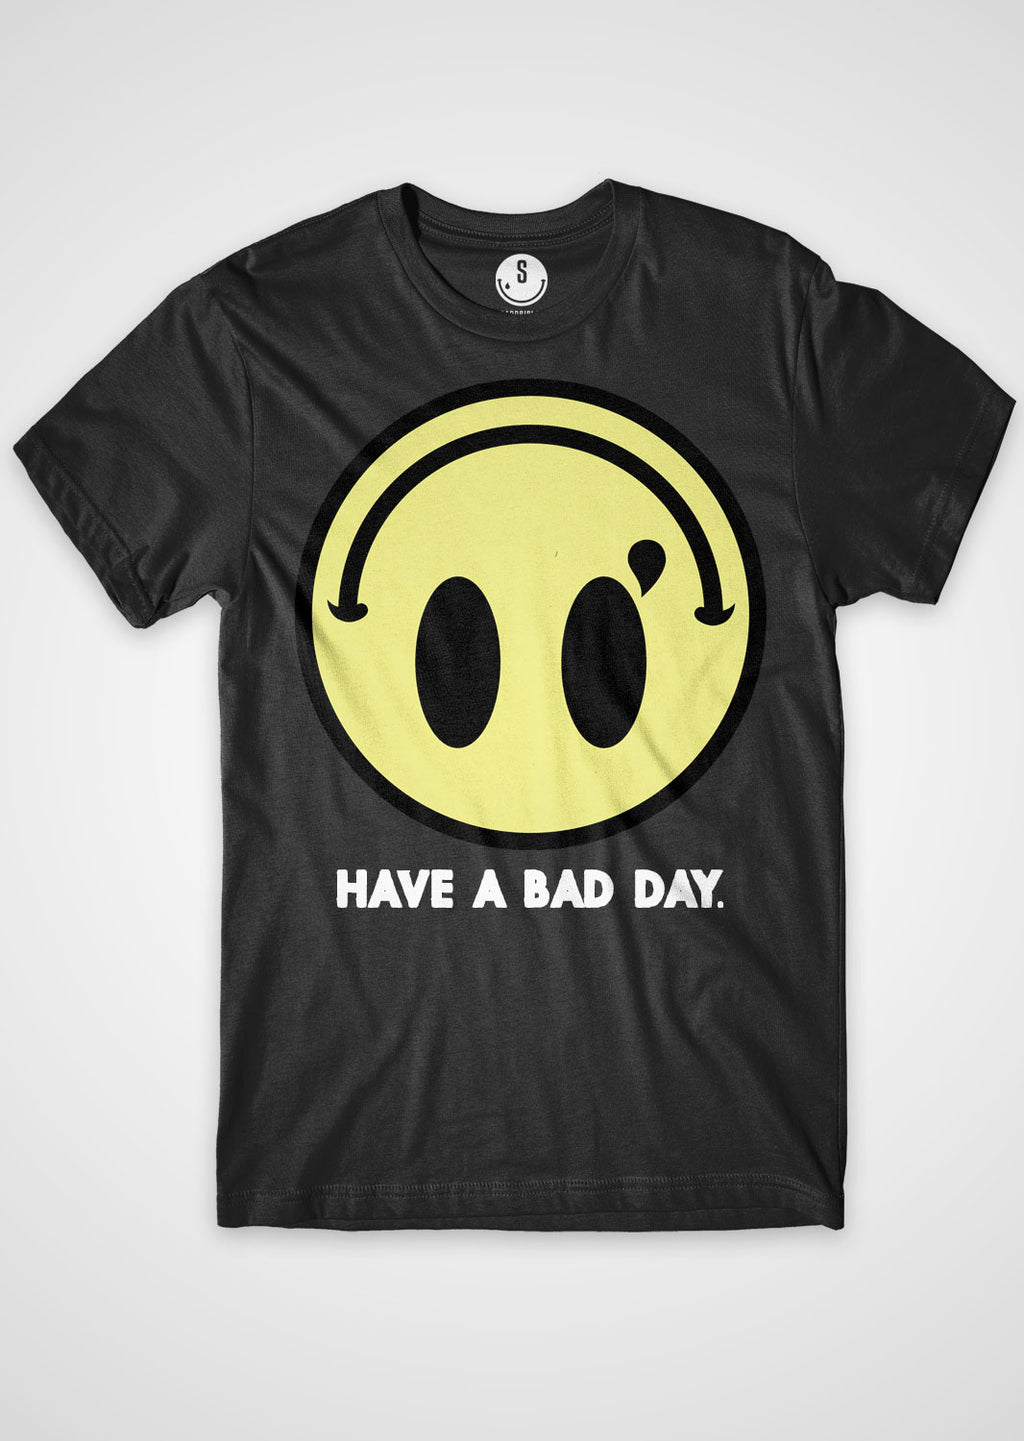 aCid BAD dAY Tee